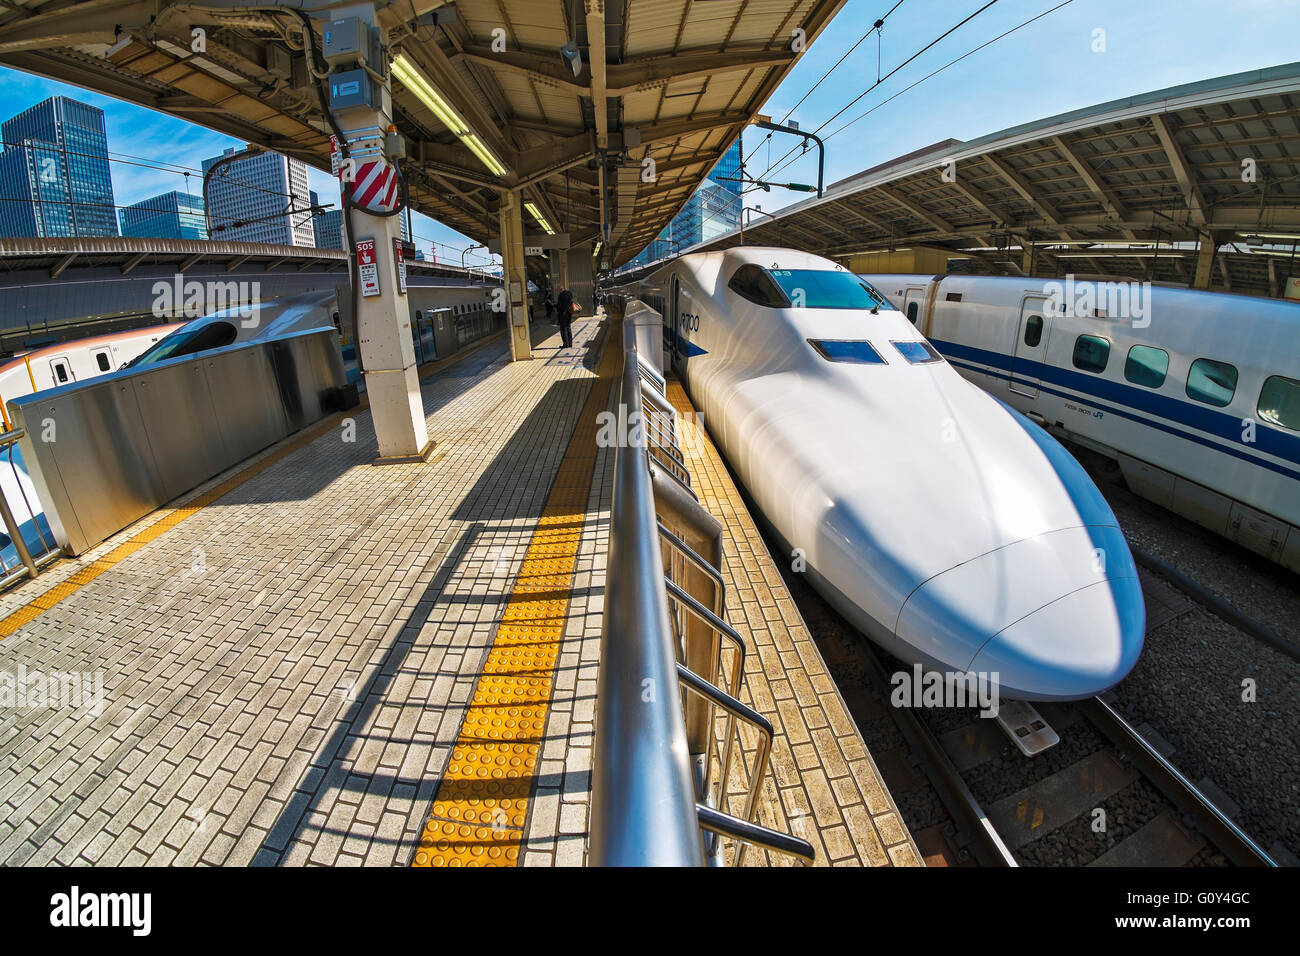 N700 class bullet train in Tokyo station - Stock Image